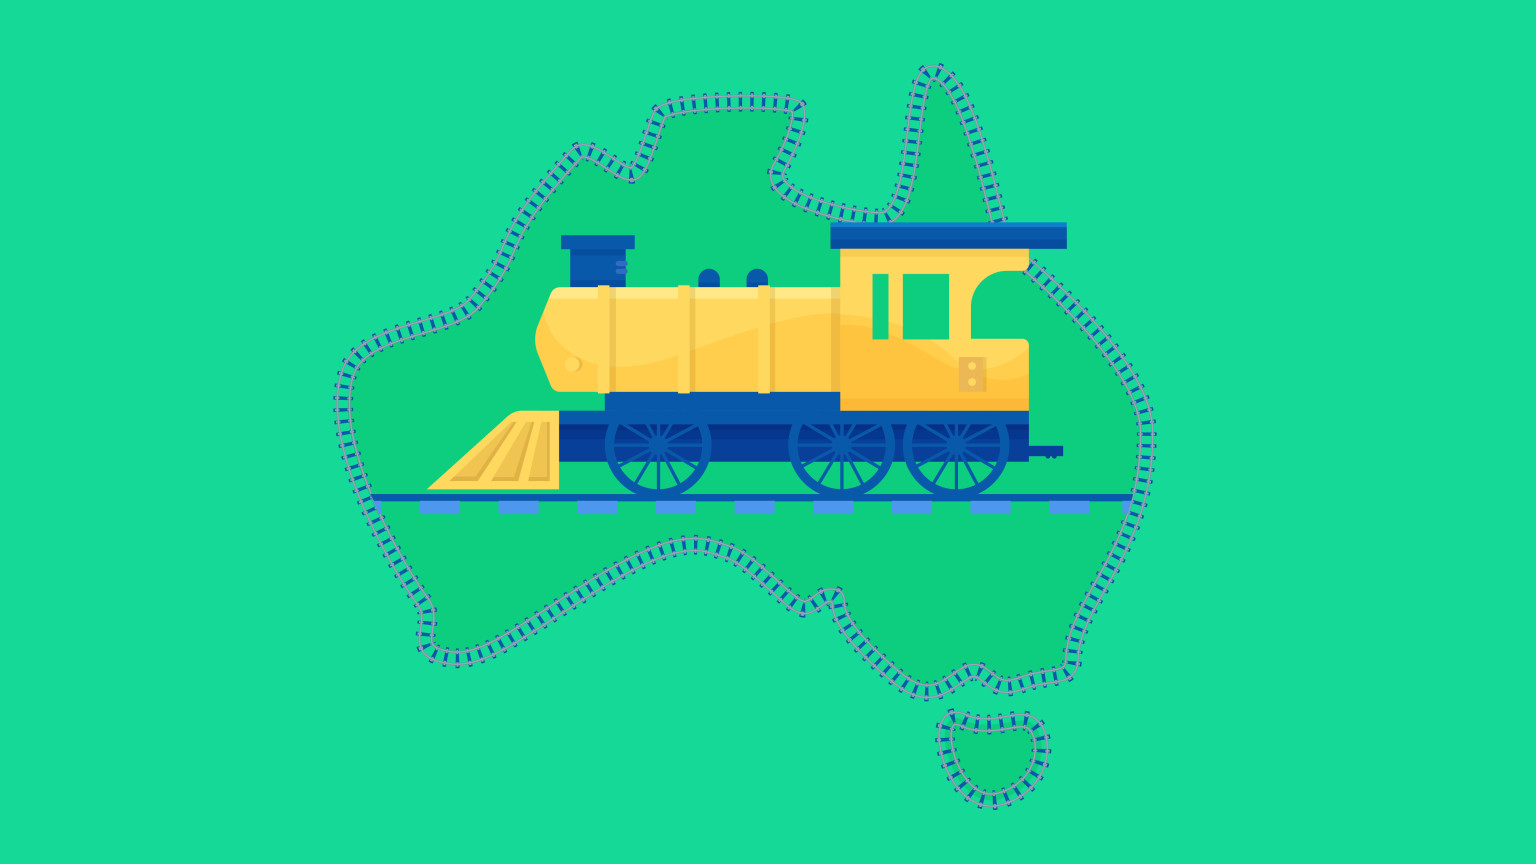 An illustration depicting a locomotive framed by the Austrlian continent outline.